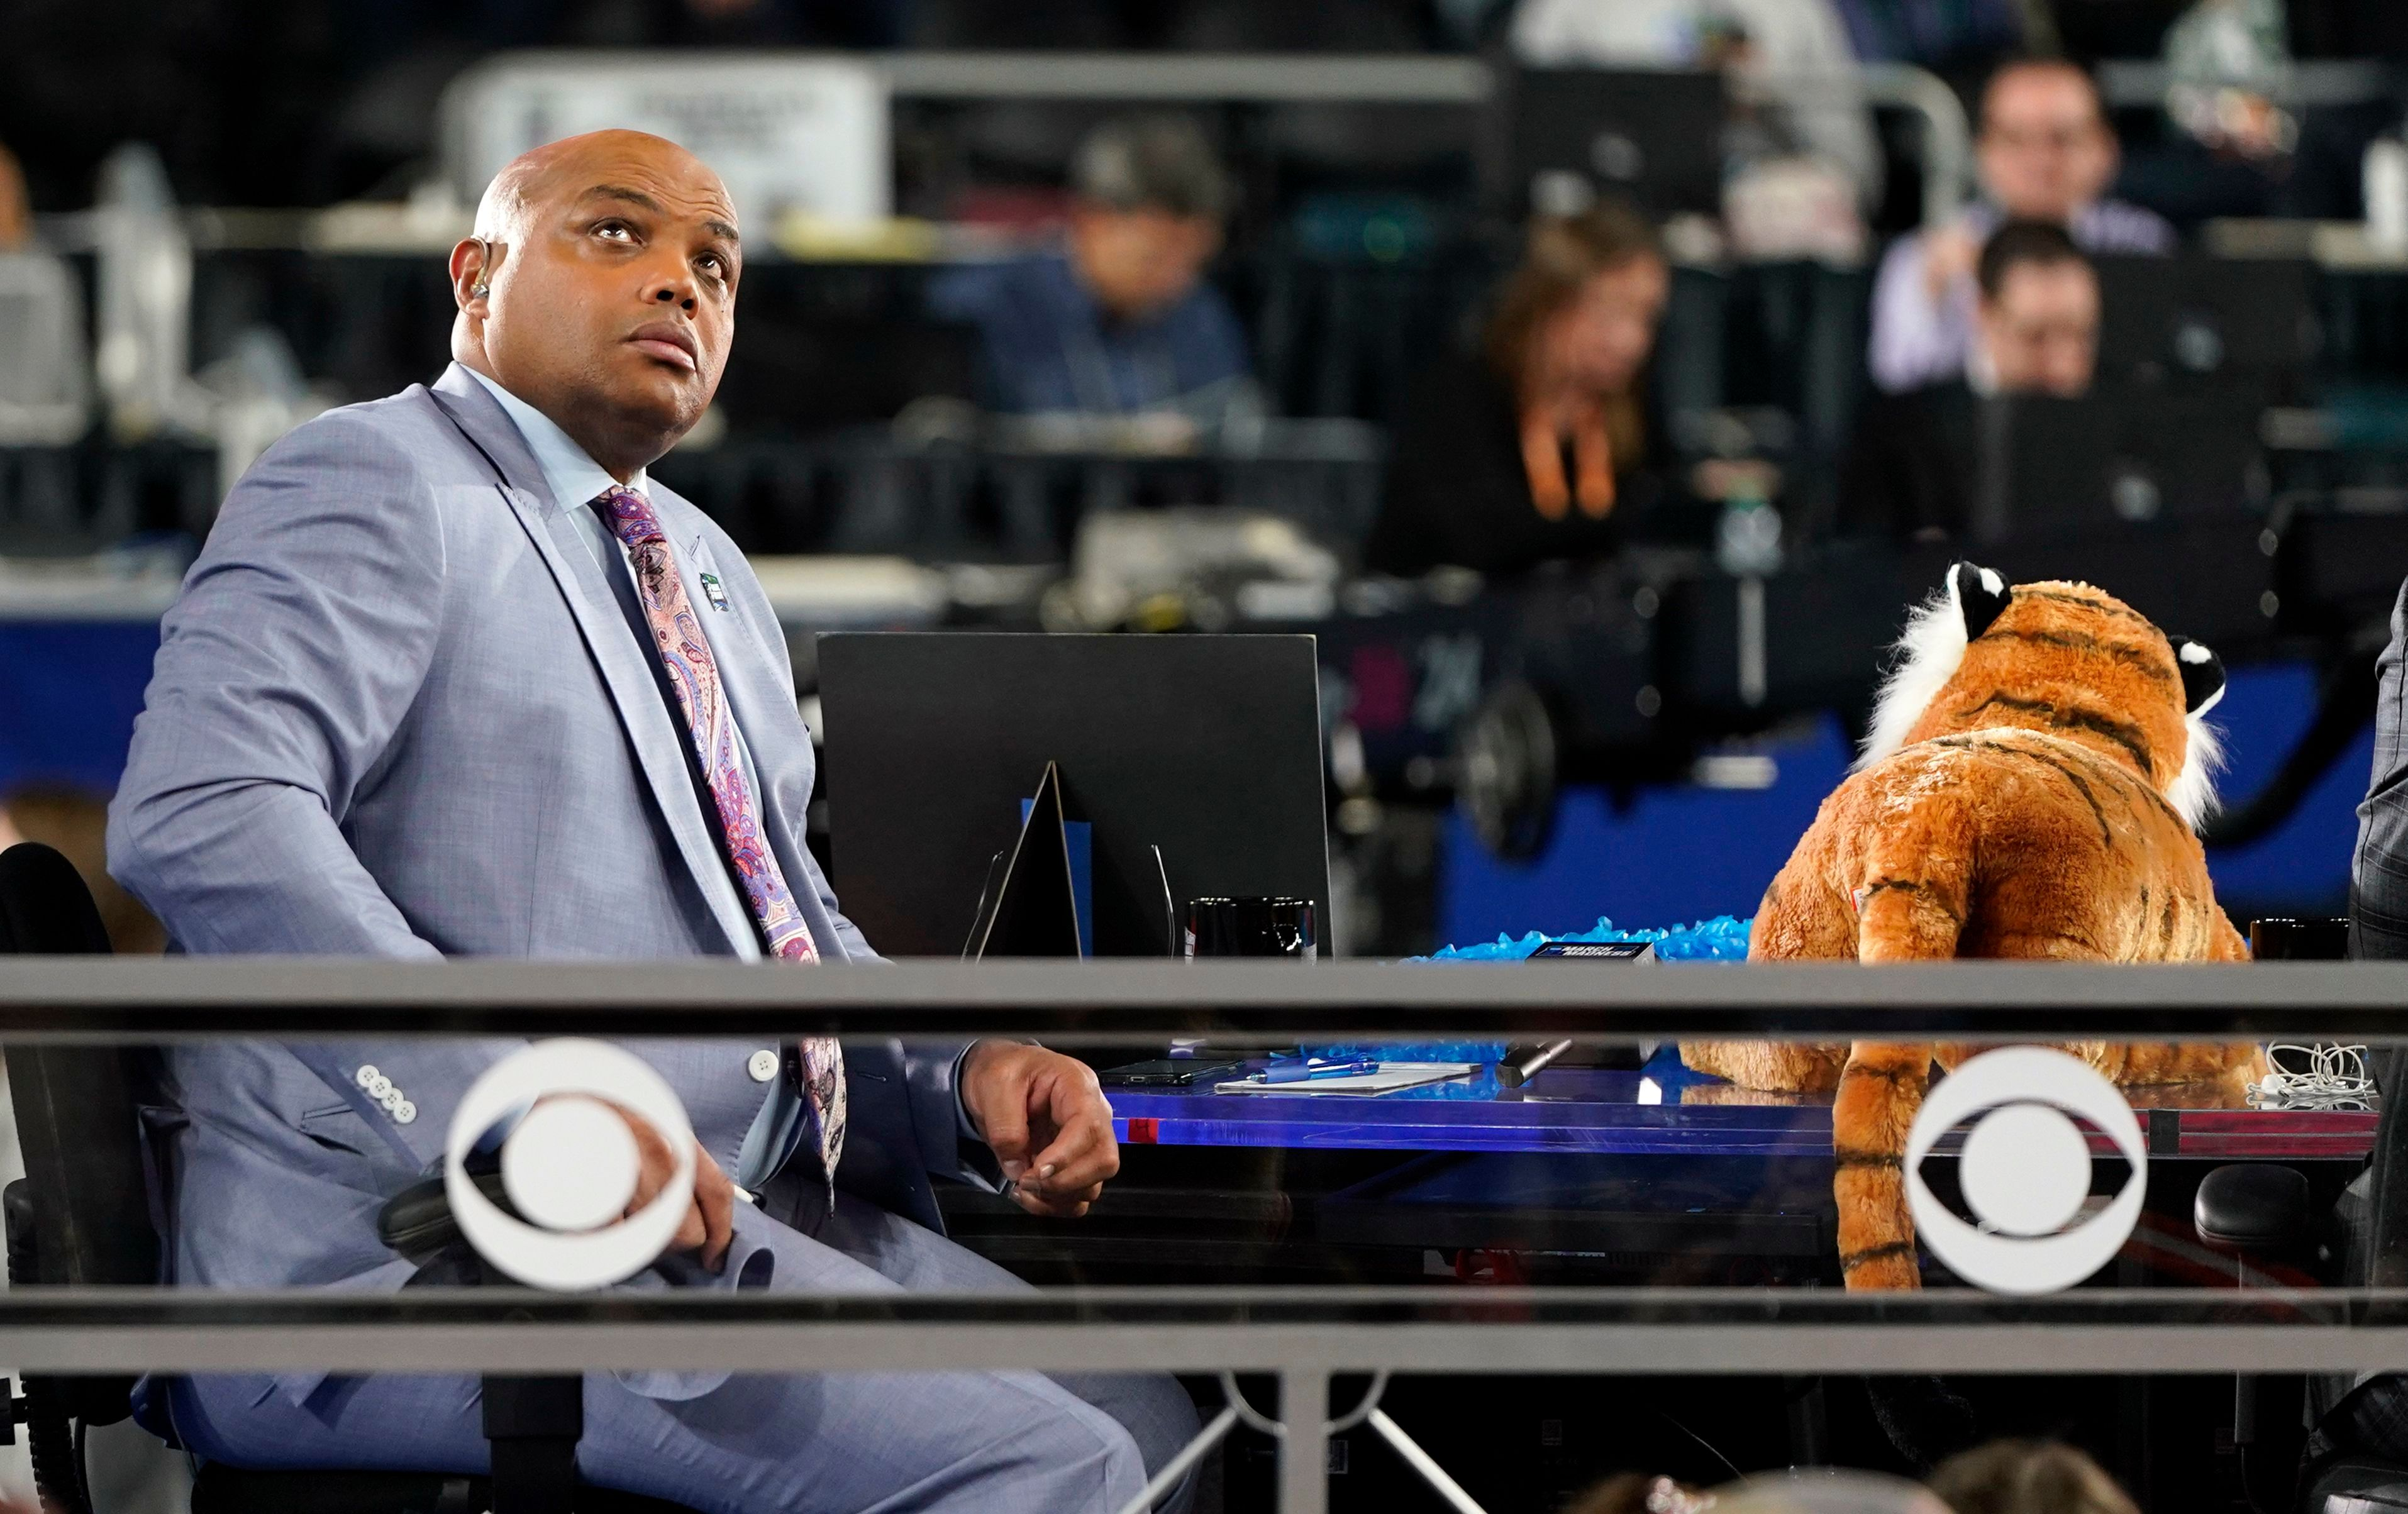 Charles Barkley Self Quarantines After Feeling Ill, Waiting for Test Results